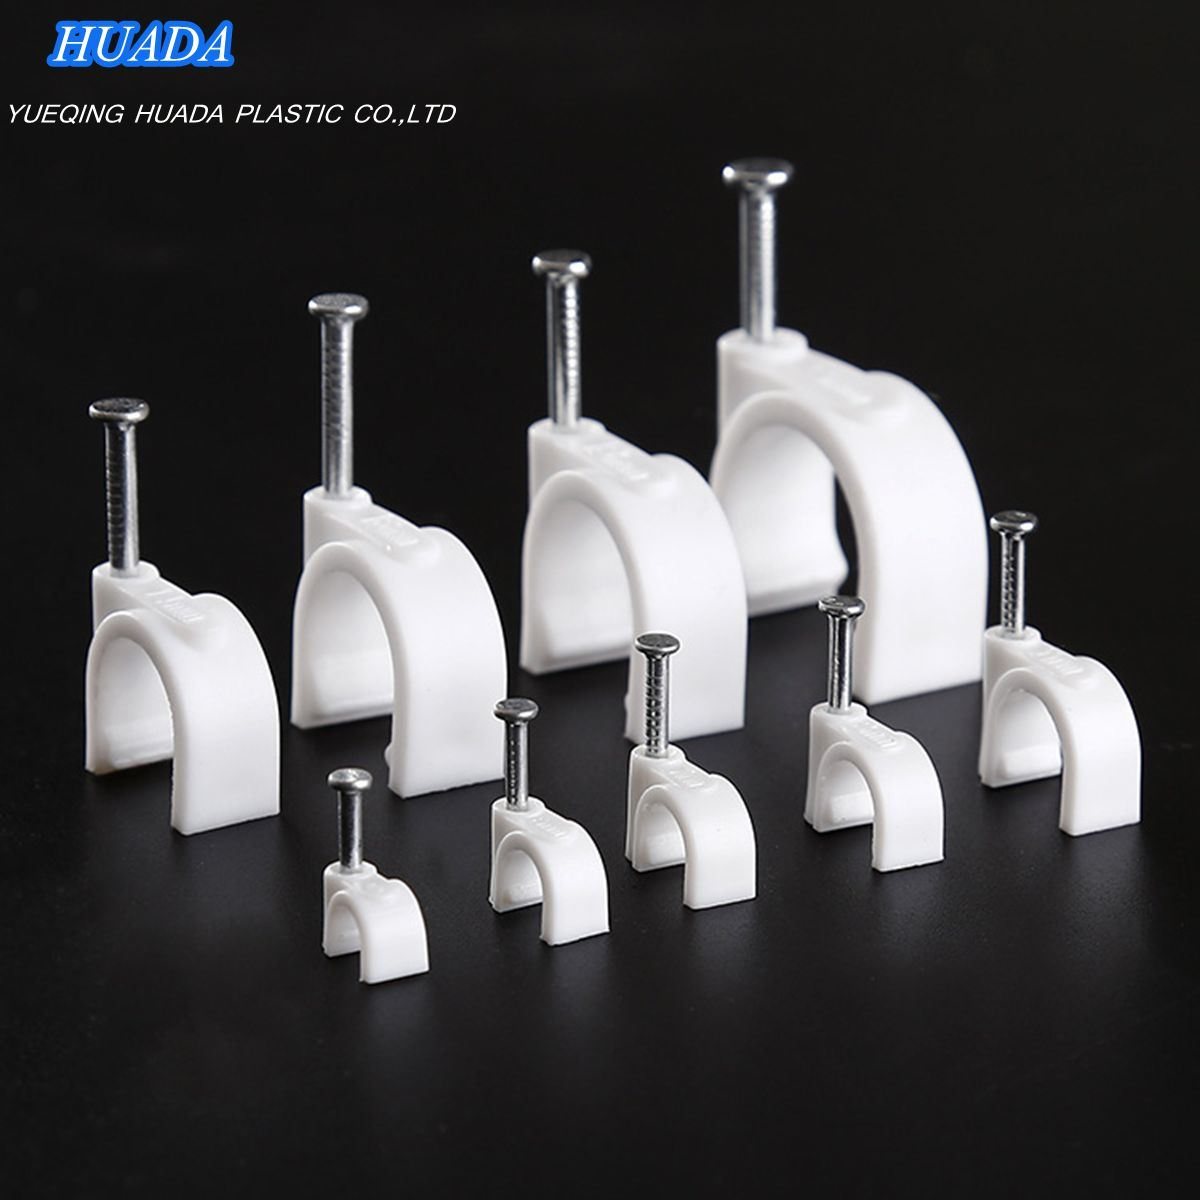 High Performance Attractive Price Twist Plastic Cable Clips/Clamp